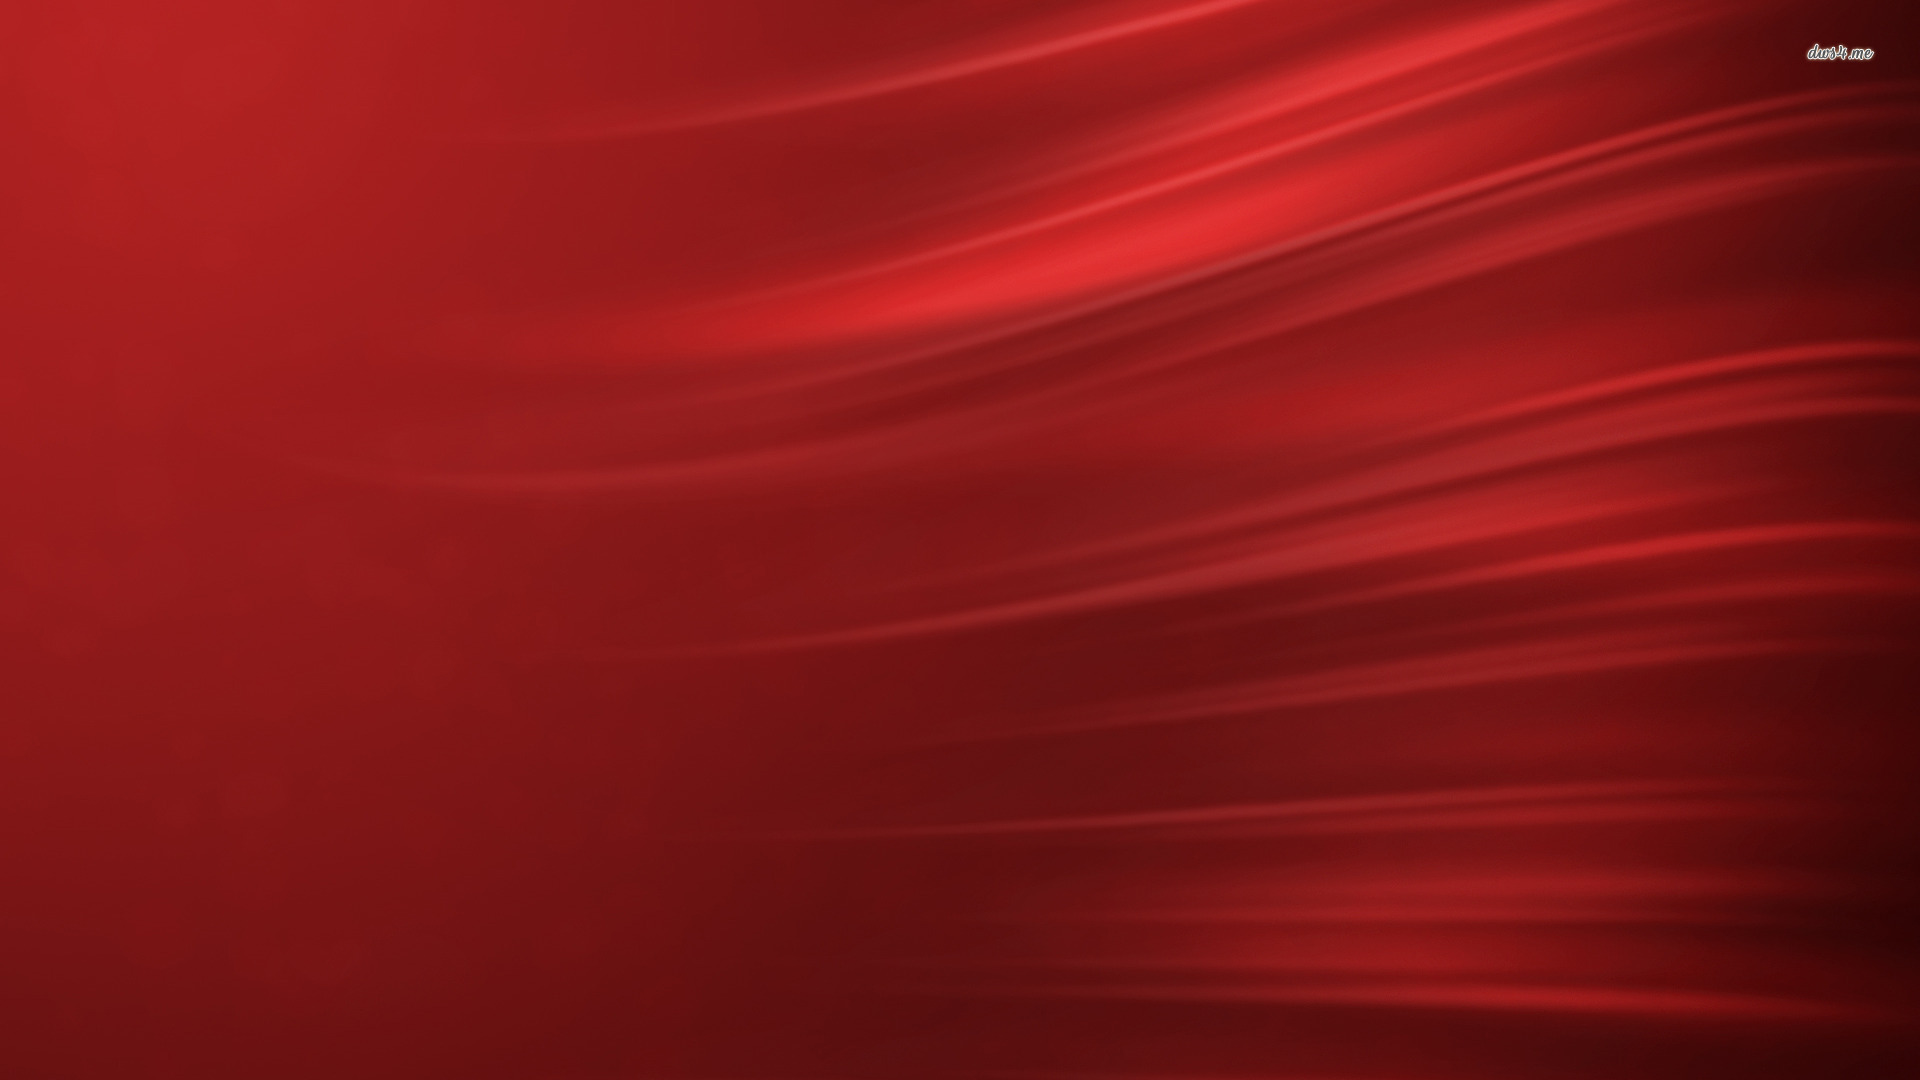 Red Curves Wallpaper Abstract Wallpapers